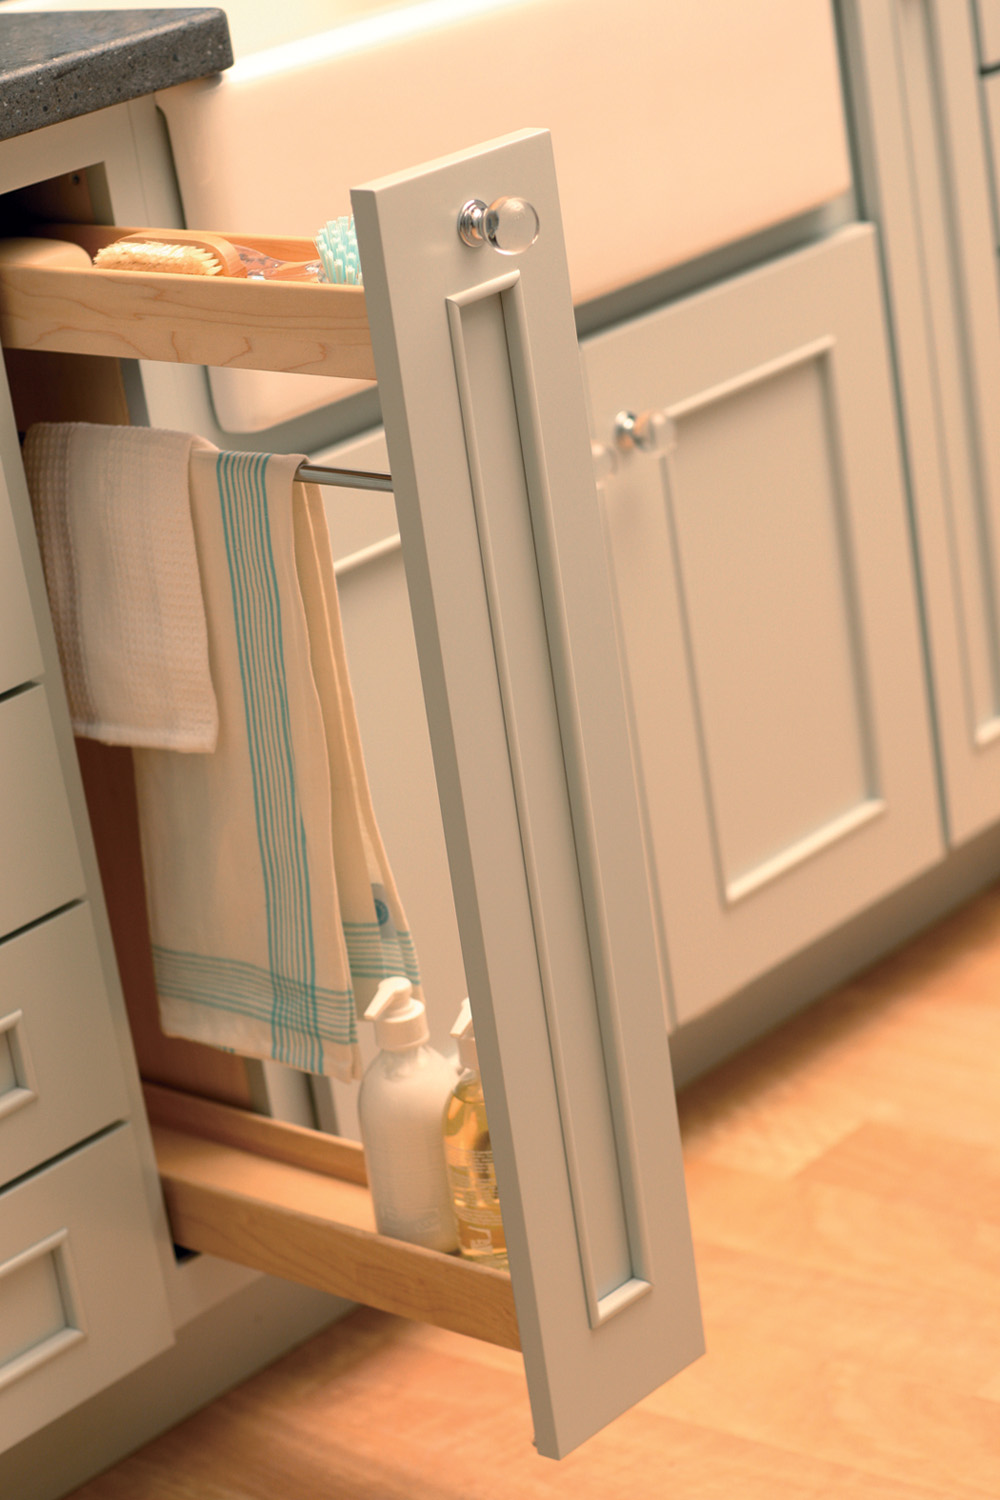 What about incorporating this thin, pull-out next to your primary clean-up sink that has a towel bar, so dish towels can dry after use (BPOF-TB or BPOC-TB) from Dura Supreme Cabinetry.